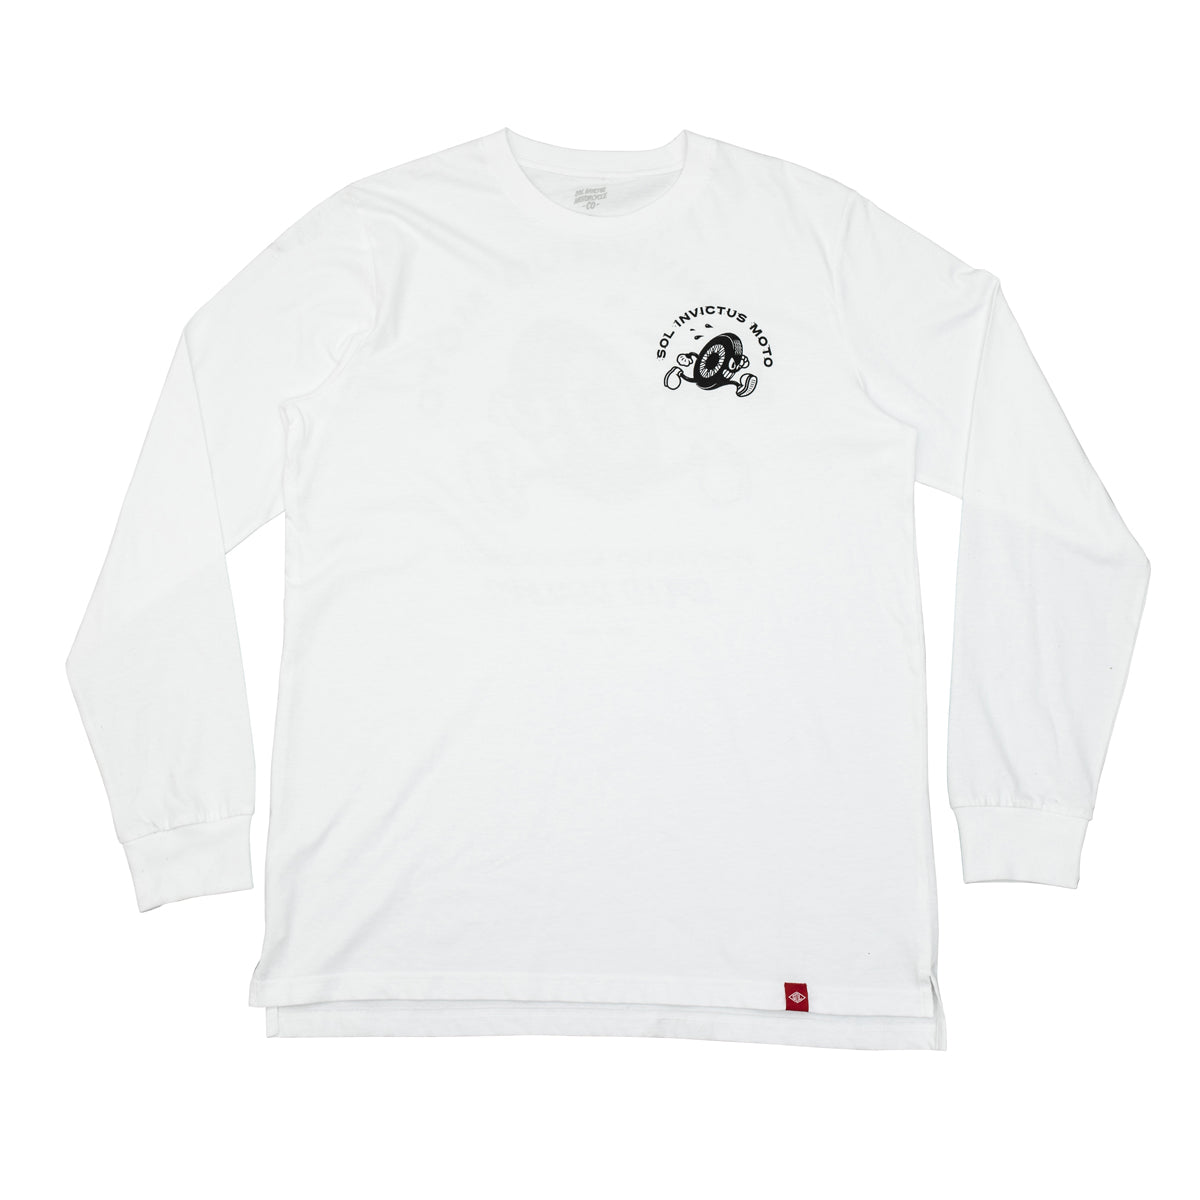 Sol Speed Dealers Tee - Long Sleeve